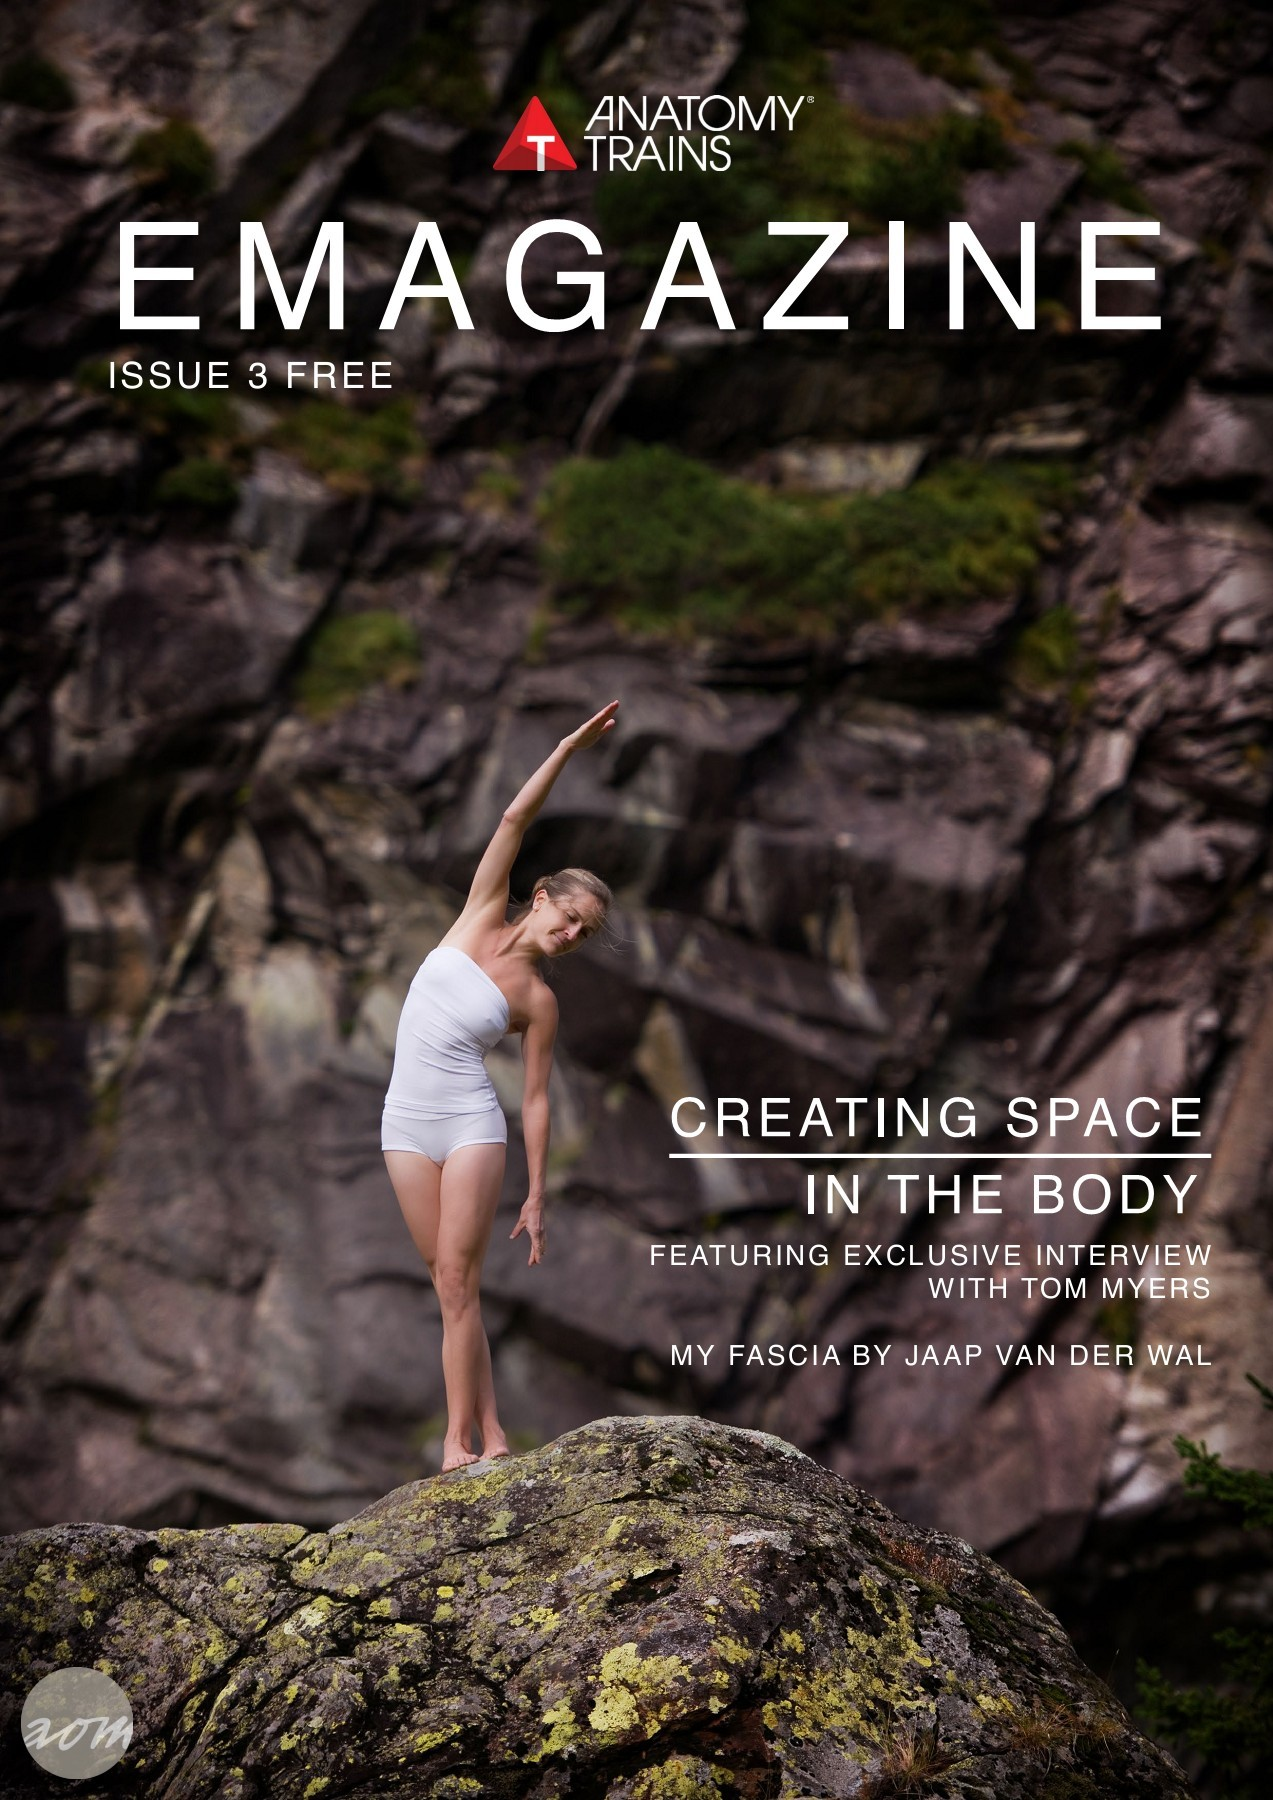 Anatomy Trains E-Magazine Issue 3 - Tom Myers Interview and Fascia